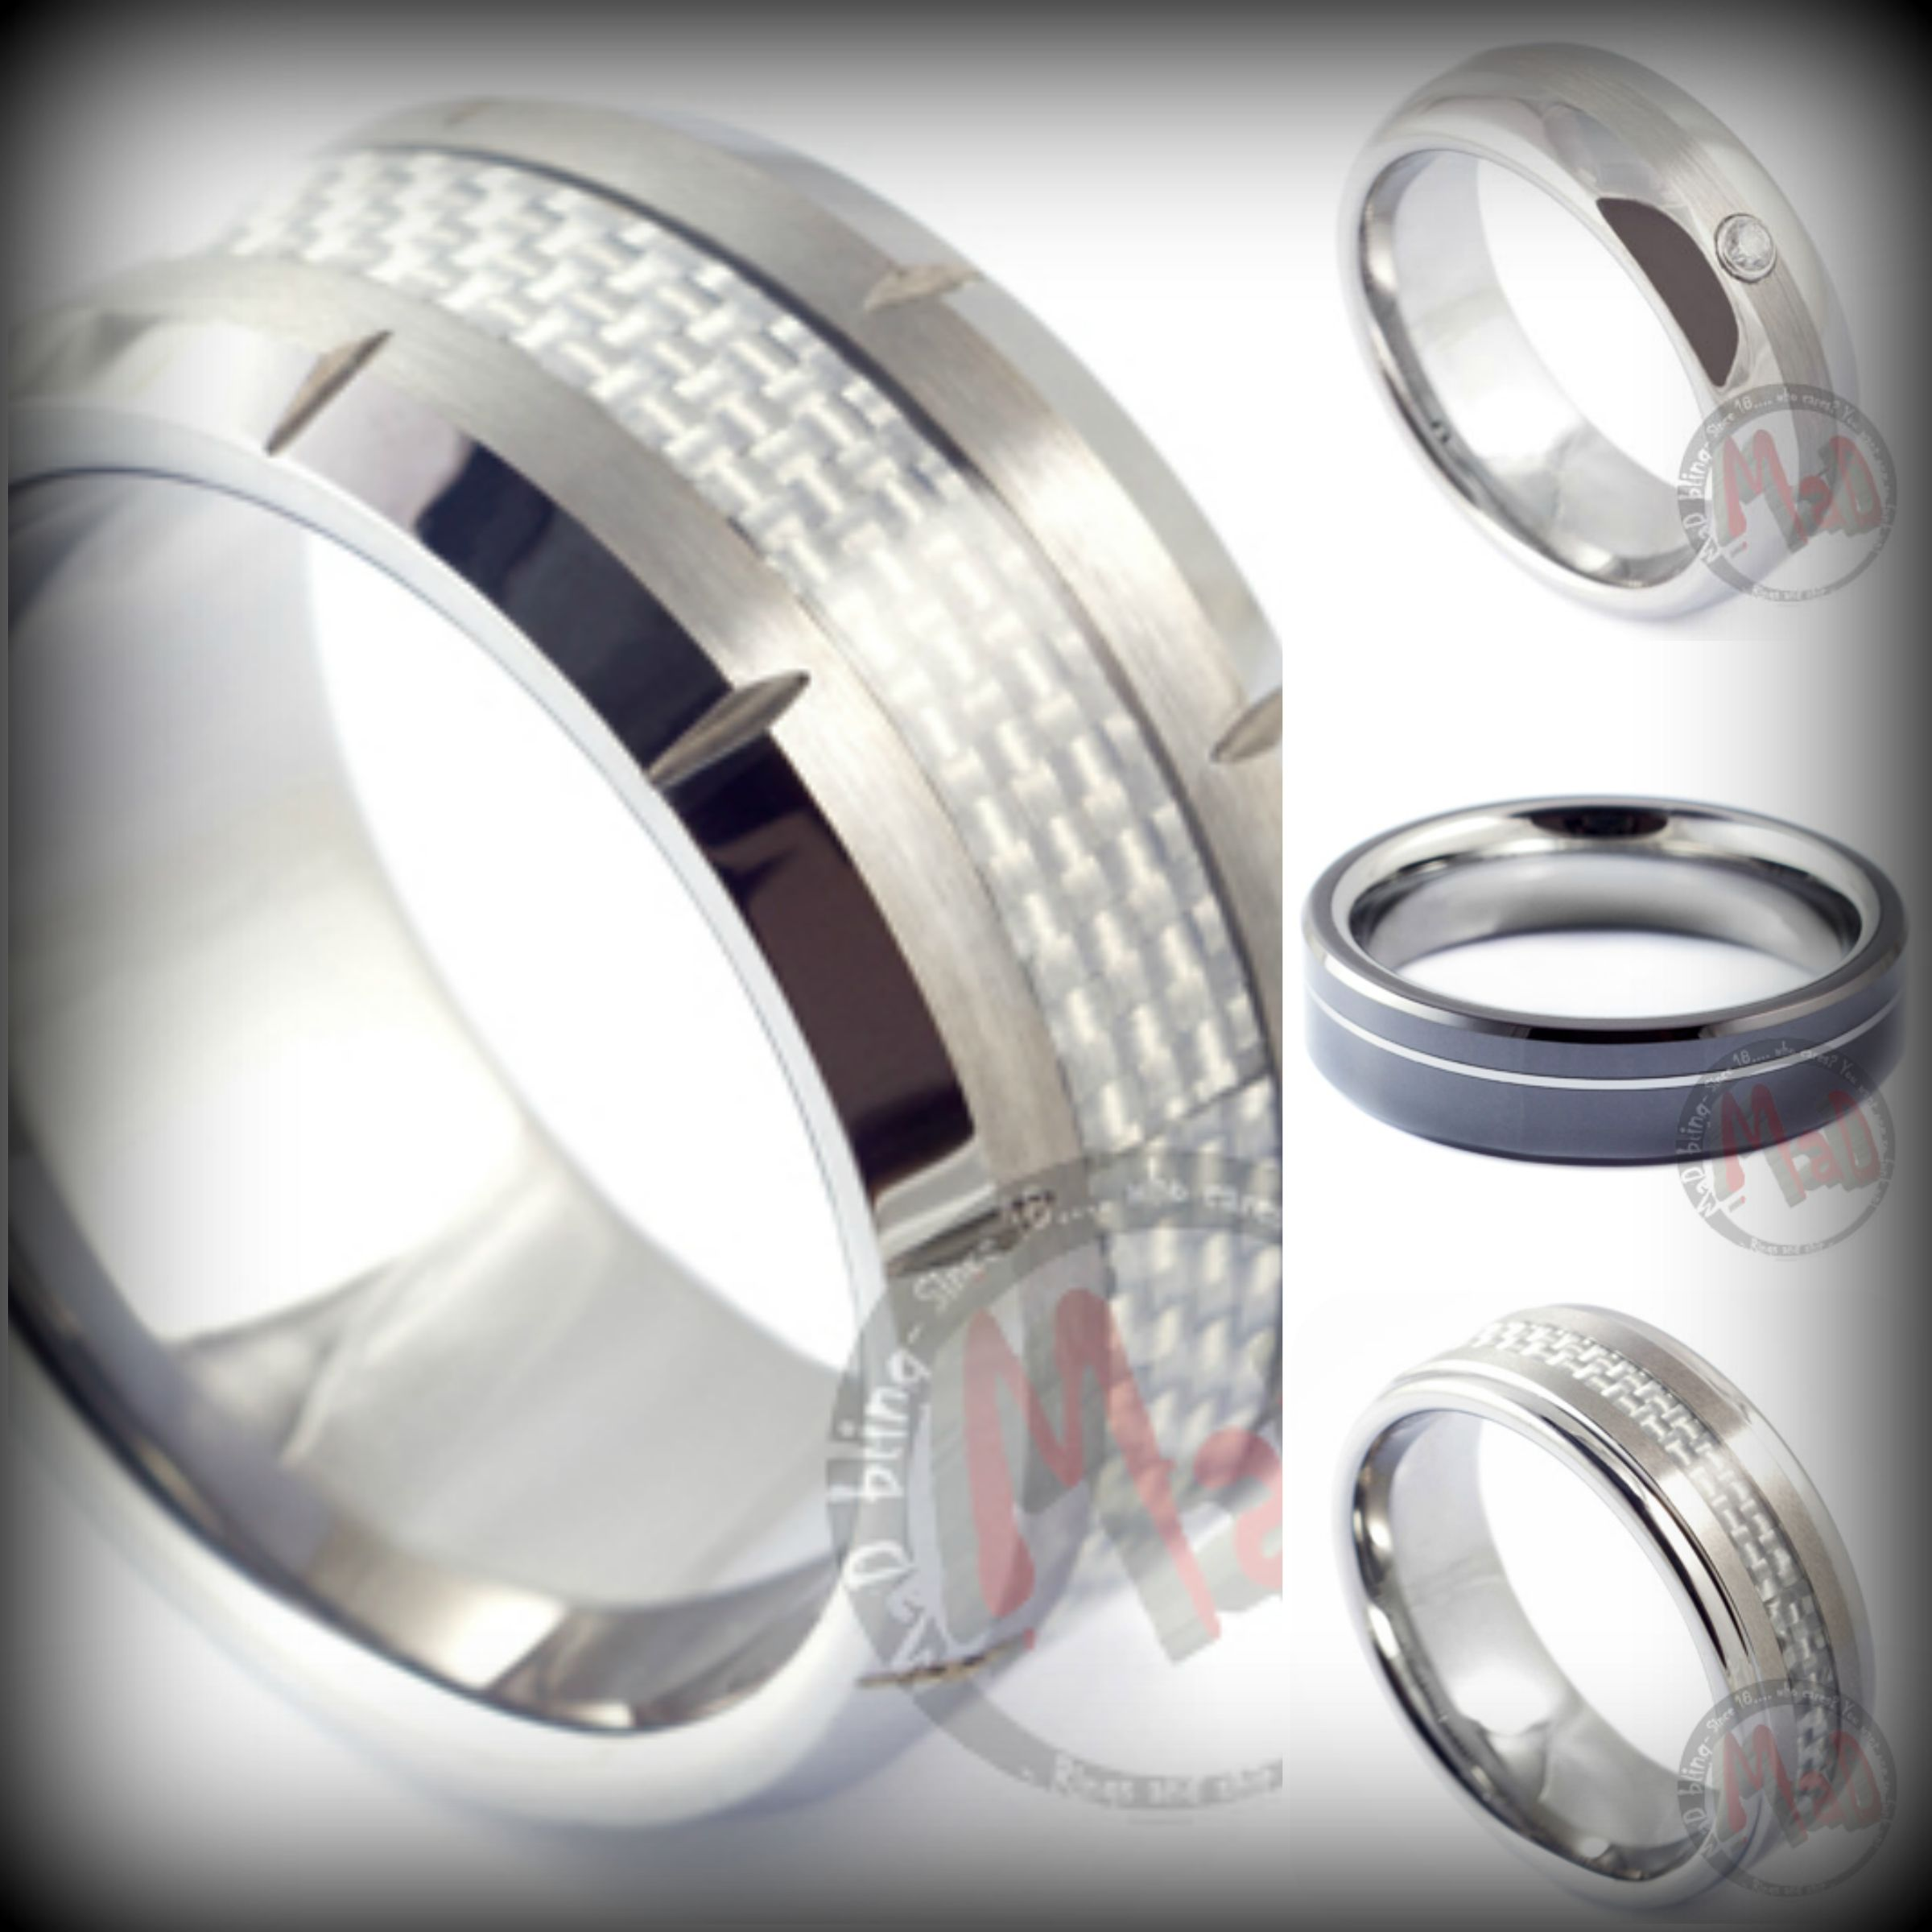 us rings collage call tungsten madtungsten carbide vs mad au blog